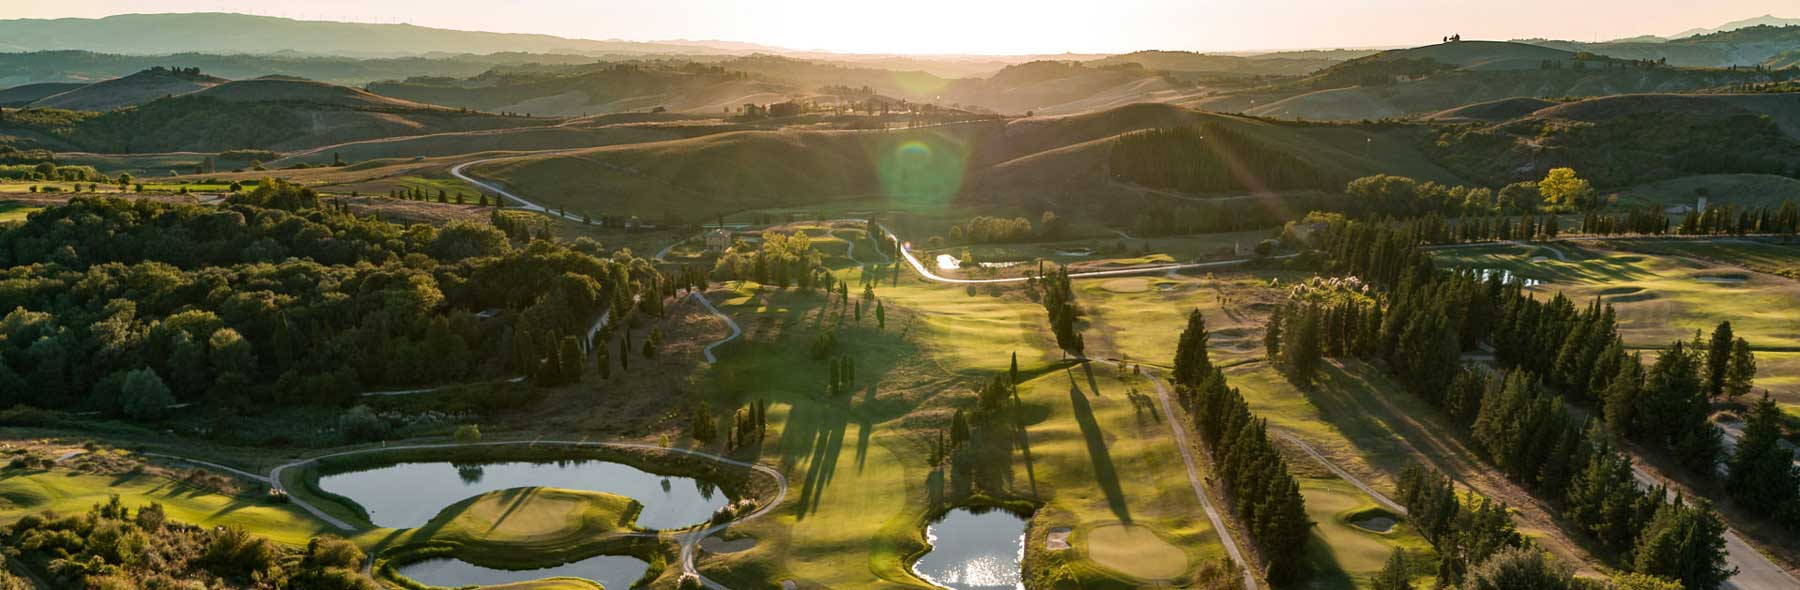 Biggest golf course in Tuscany, aerial view. Toscana Resort Castelfalfi